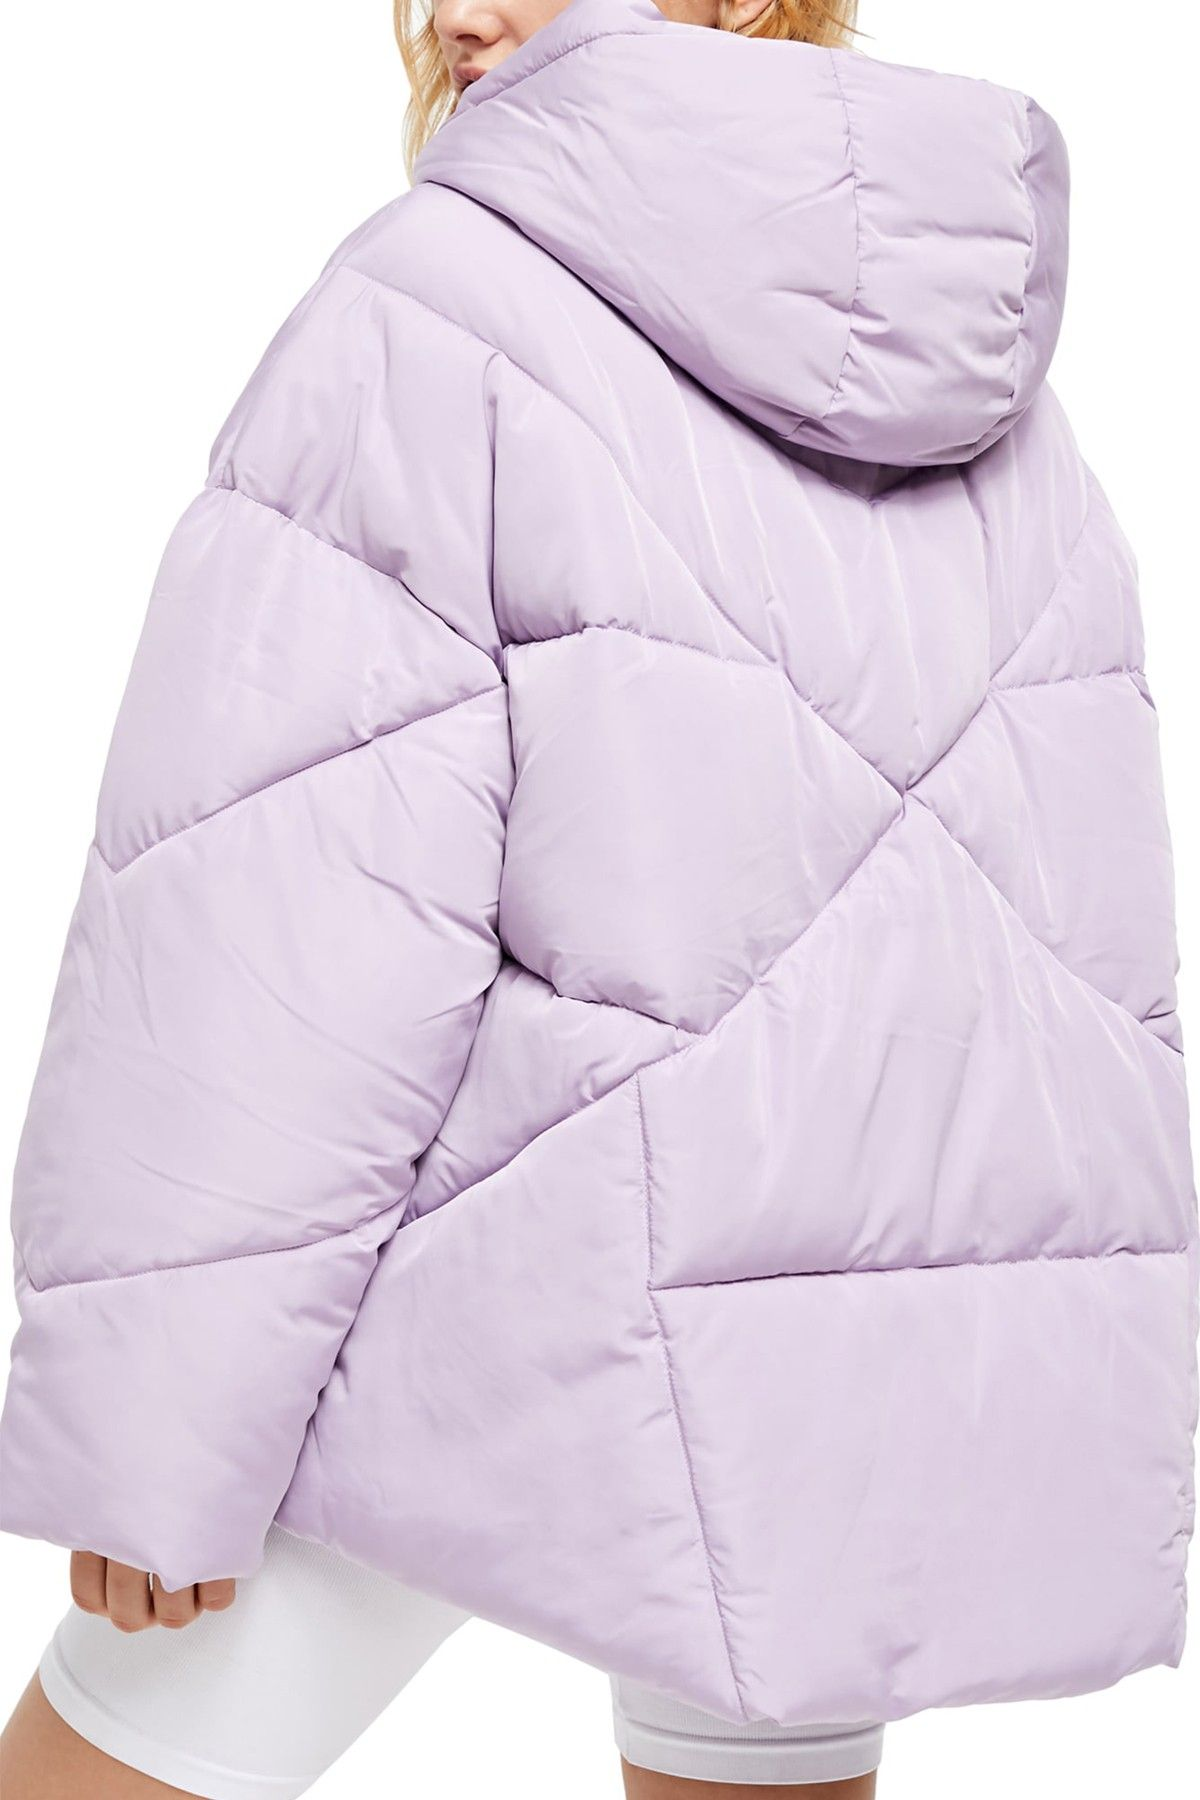 Free People Hailey Puffer Jacket Nordstrom Rack Puffer Jackets Puffer Jackets [ 1800 x 1200 Pixel ]